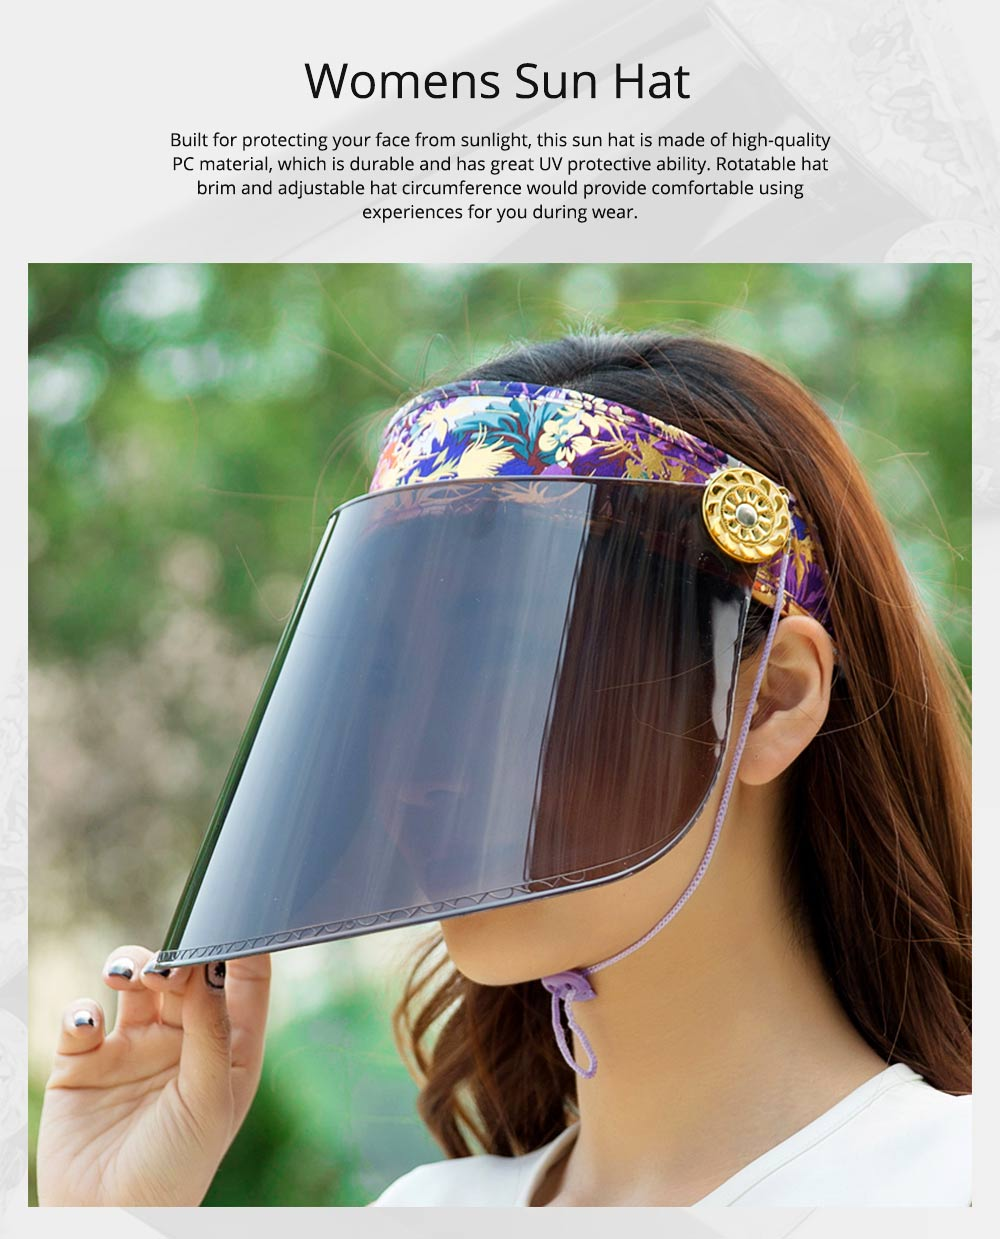 Unisex Summer Outdoor Driving Sun Hat Visor, UV Protection Waterproof PC Adult Cycling Sun Cap 0